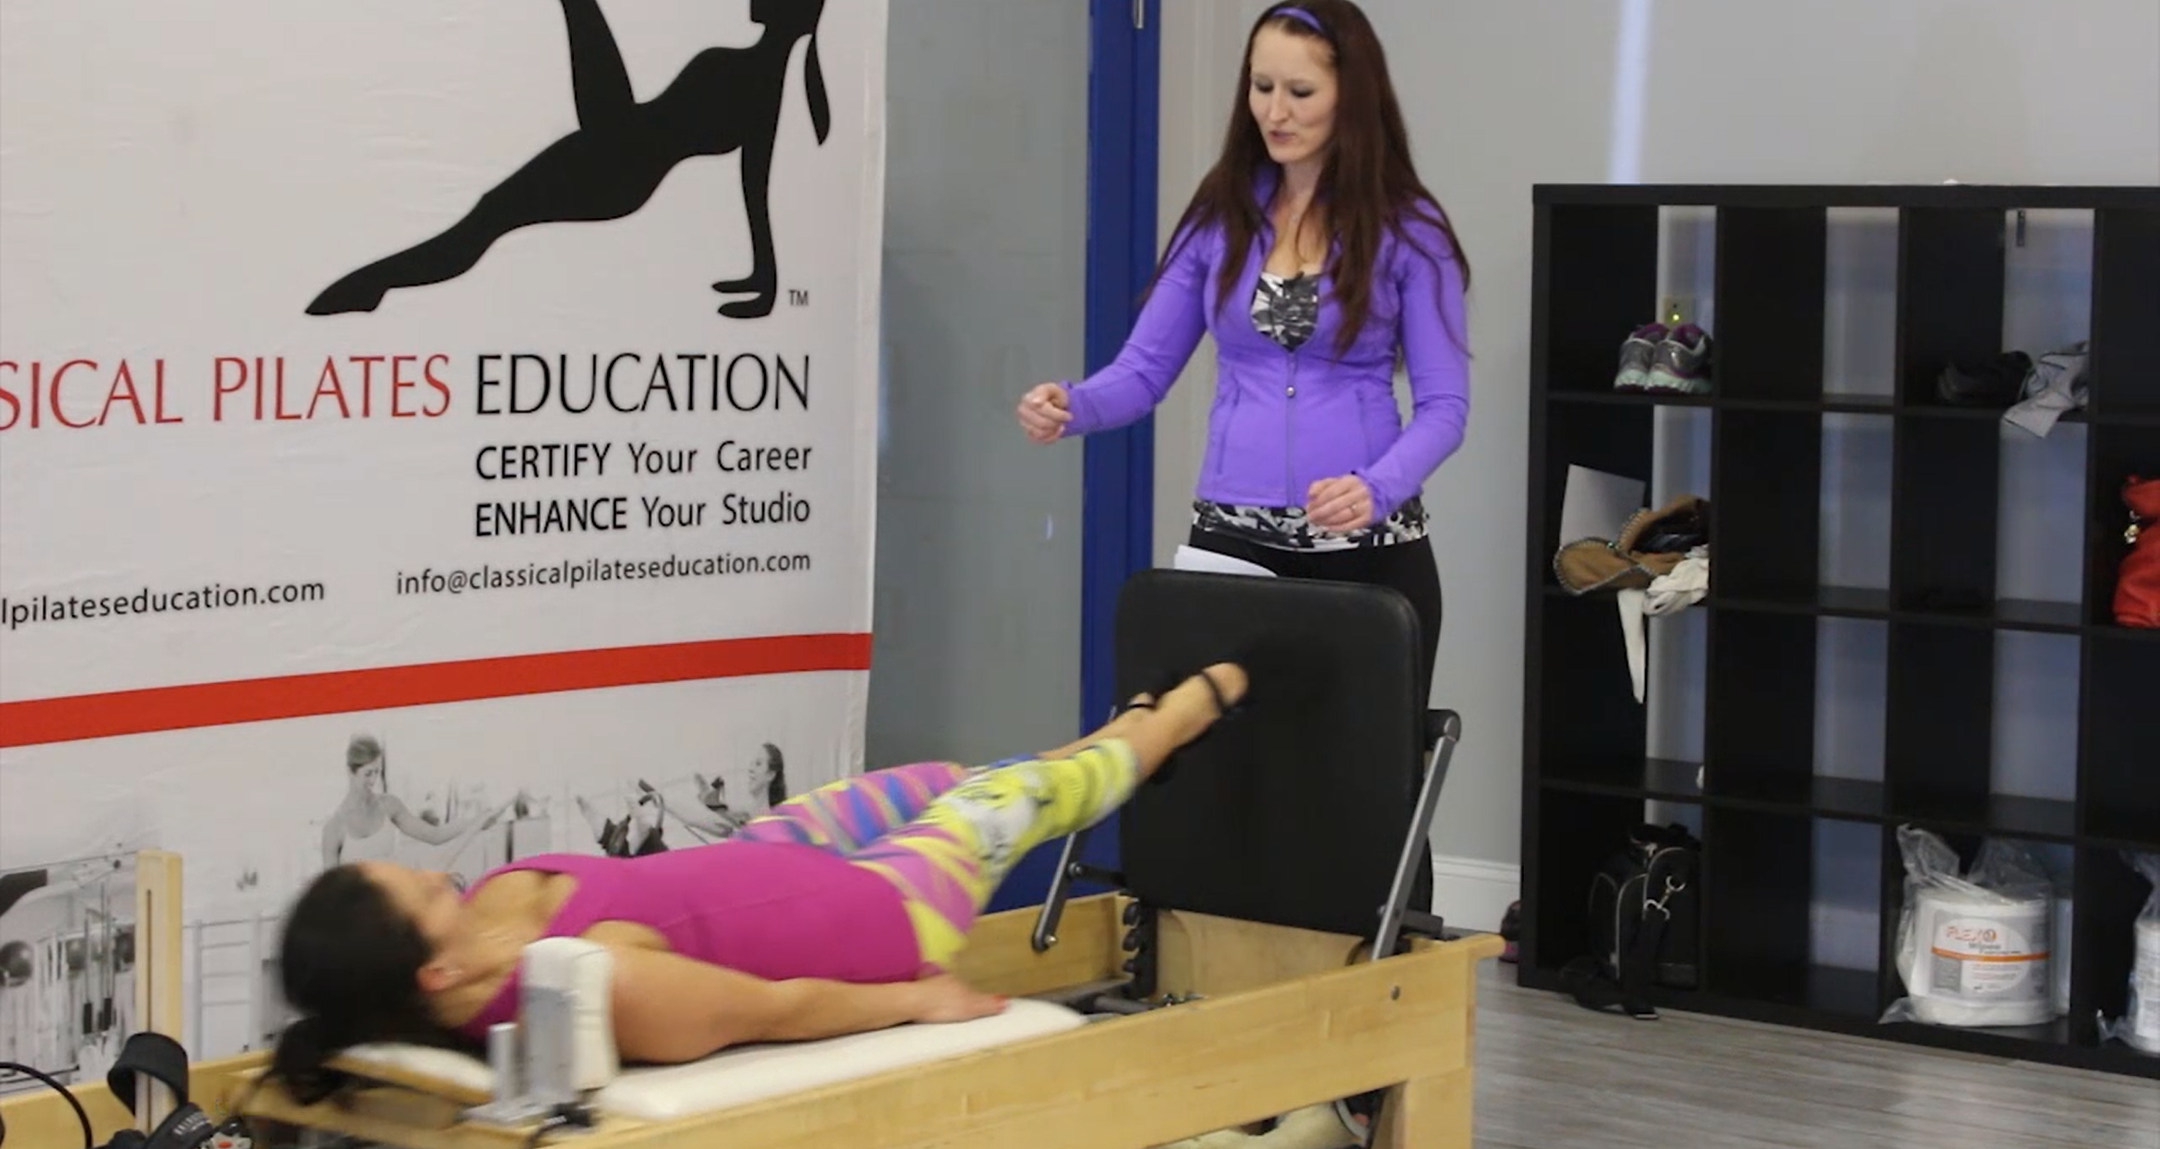 Reformer Jump board and Pedipul Workshop with Katie Thoms